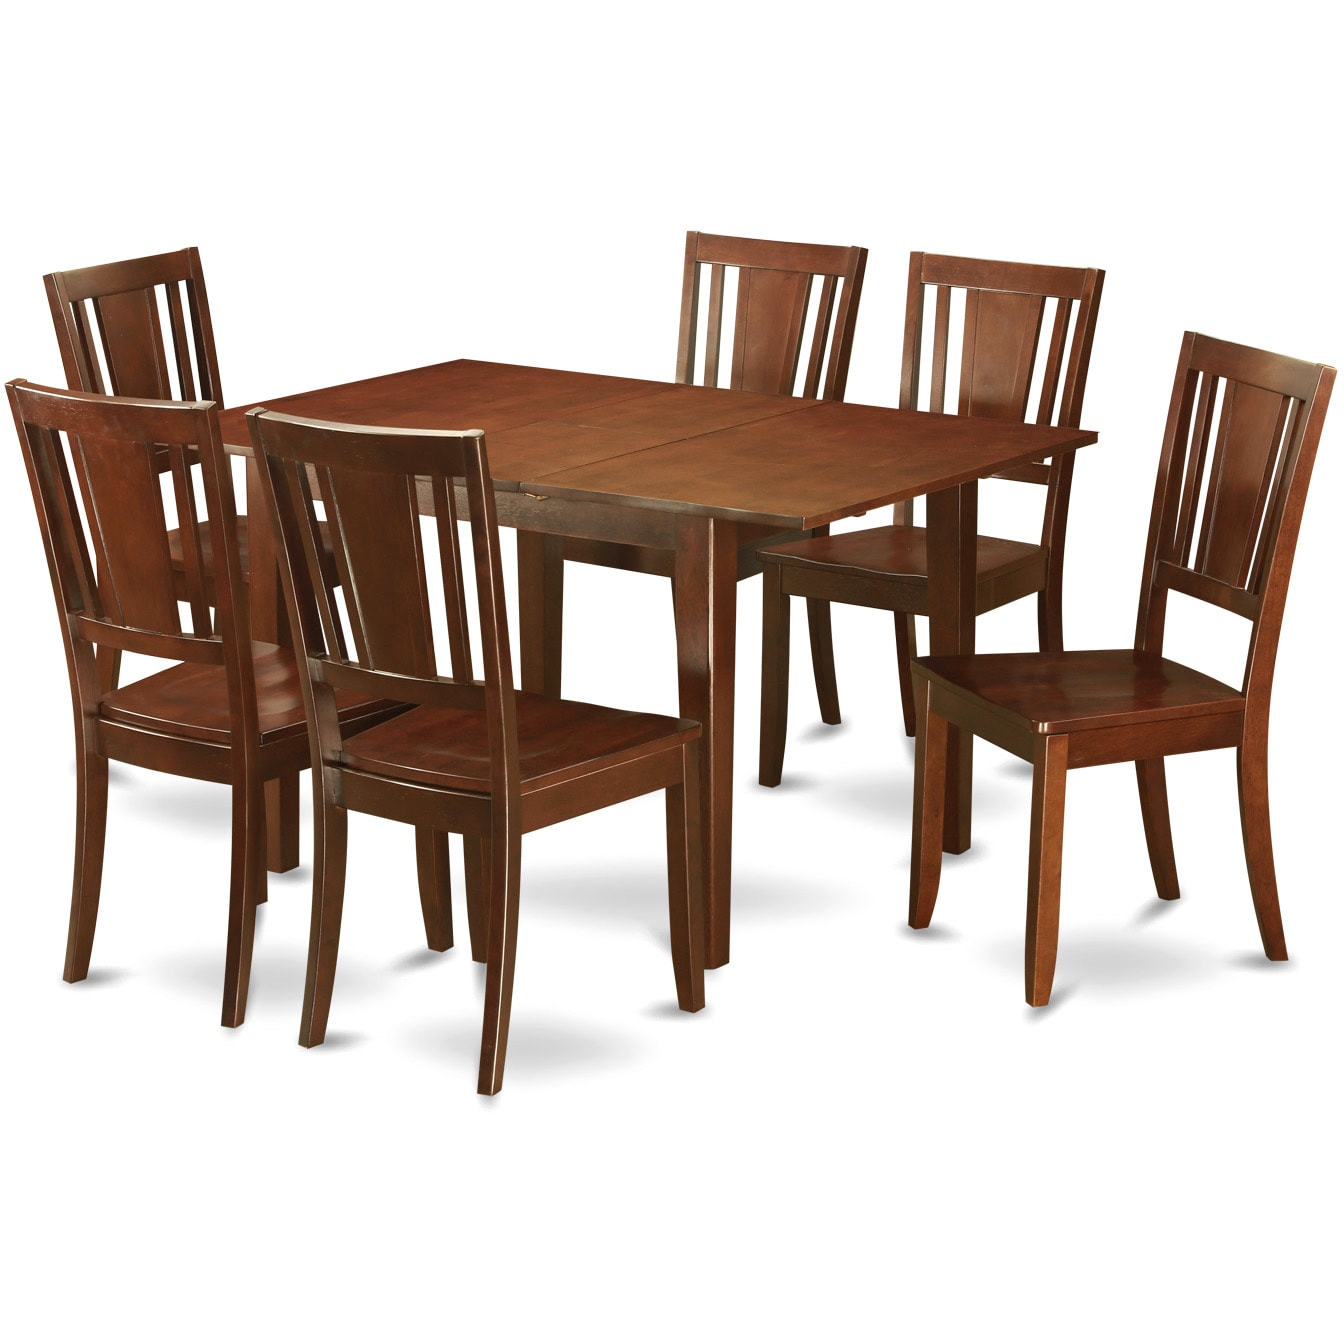 Awe Inspiring East West Furniture Picasso Mahogany Rubberwood Dinette Table With 6 Dining Chairs Gmtry Best Dining Table And Chair Ideas Images Gmtryco